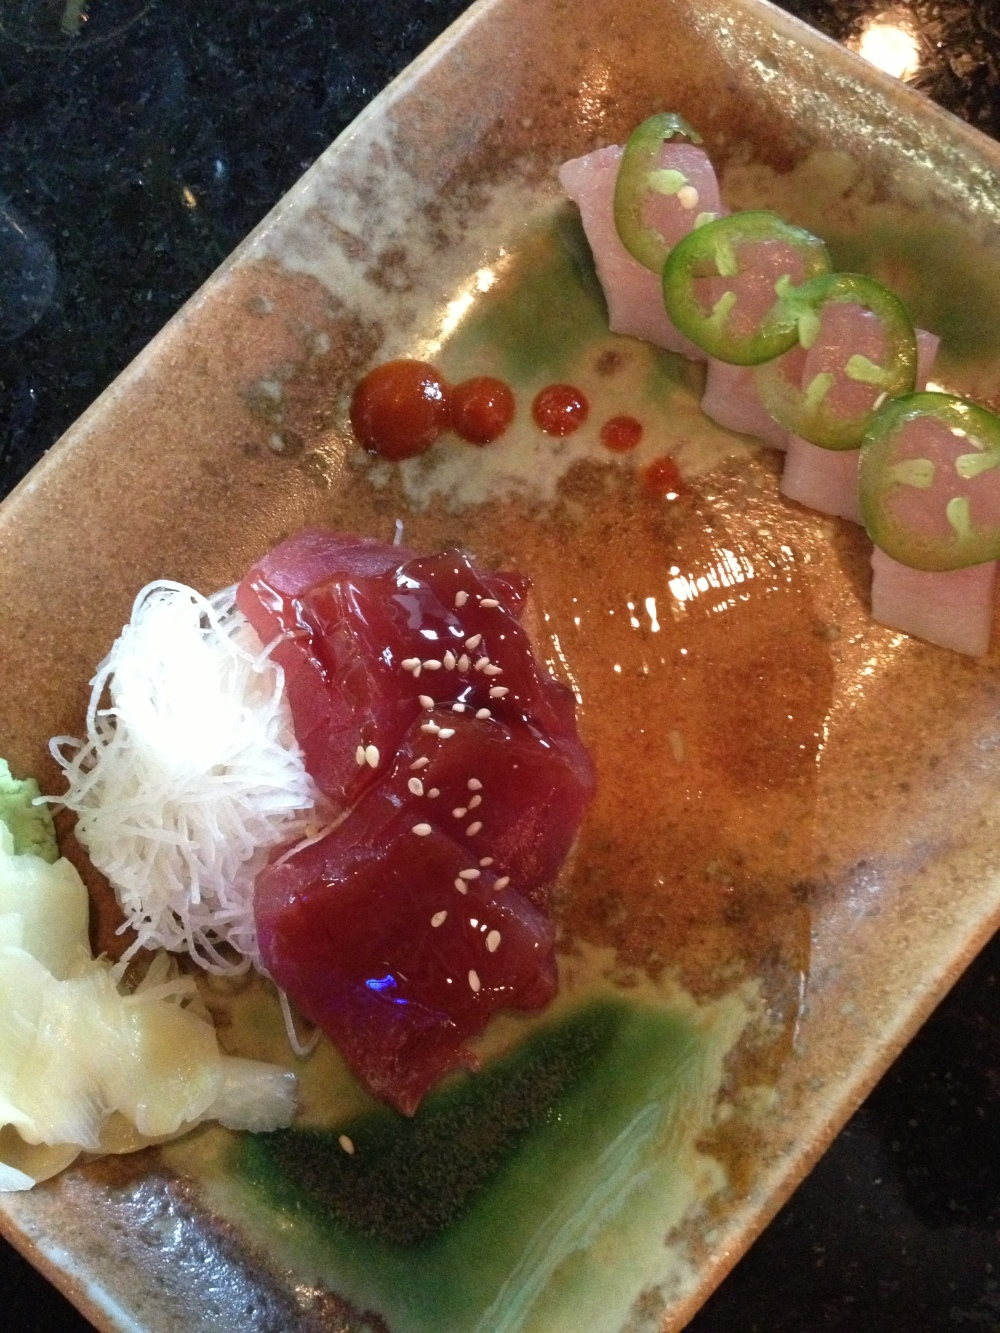 chef's pick at the sushi bar